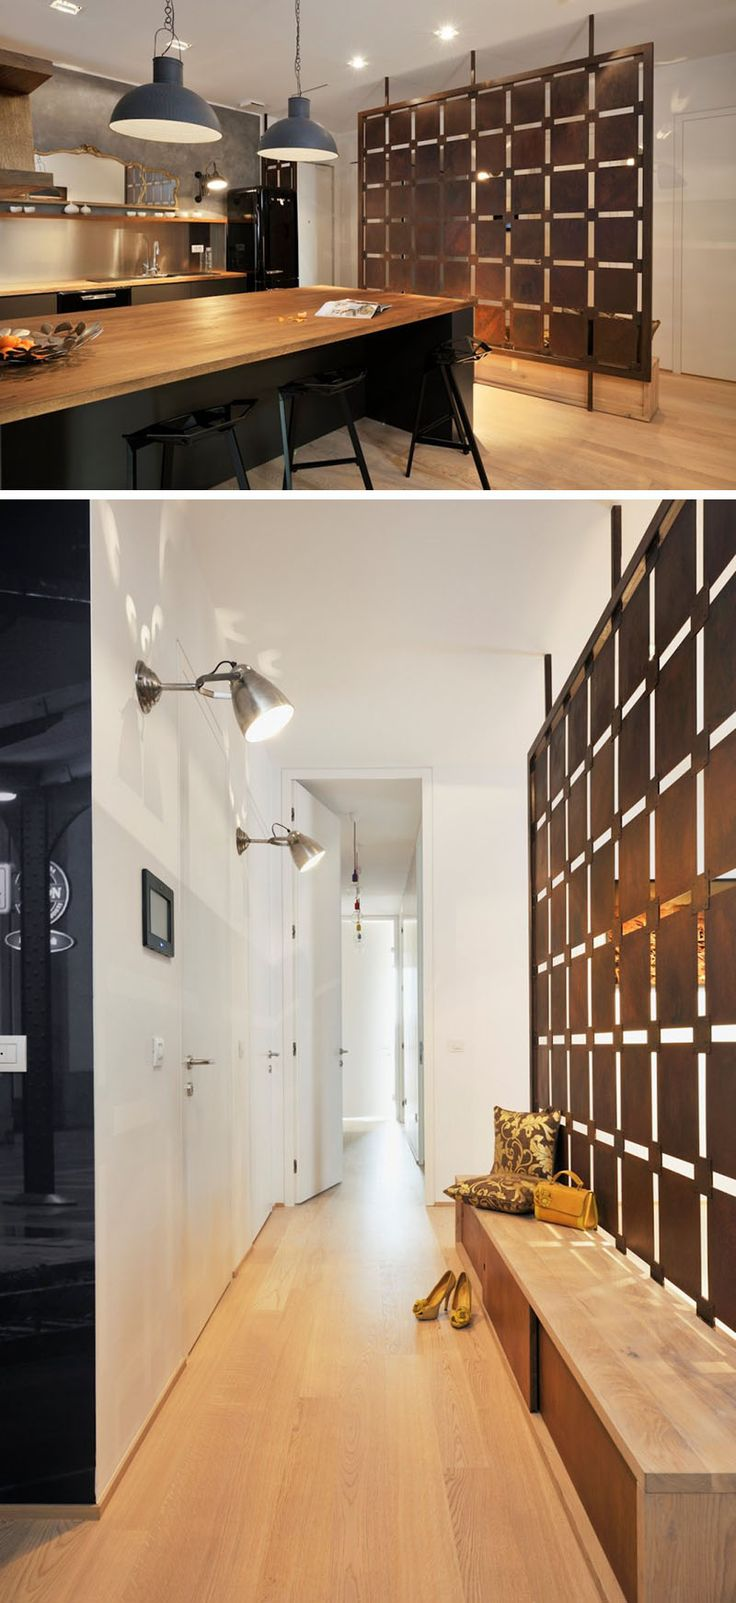 Partition Wall Kitchen : Best partition ideas on pinterest dividing wall room